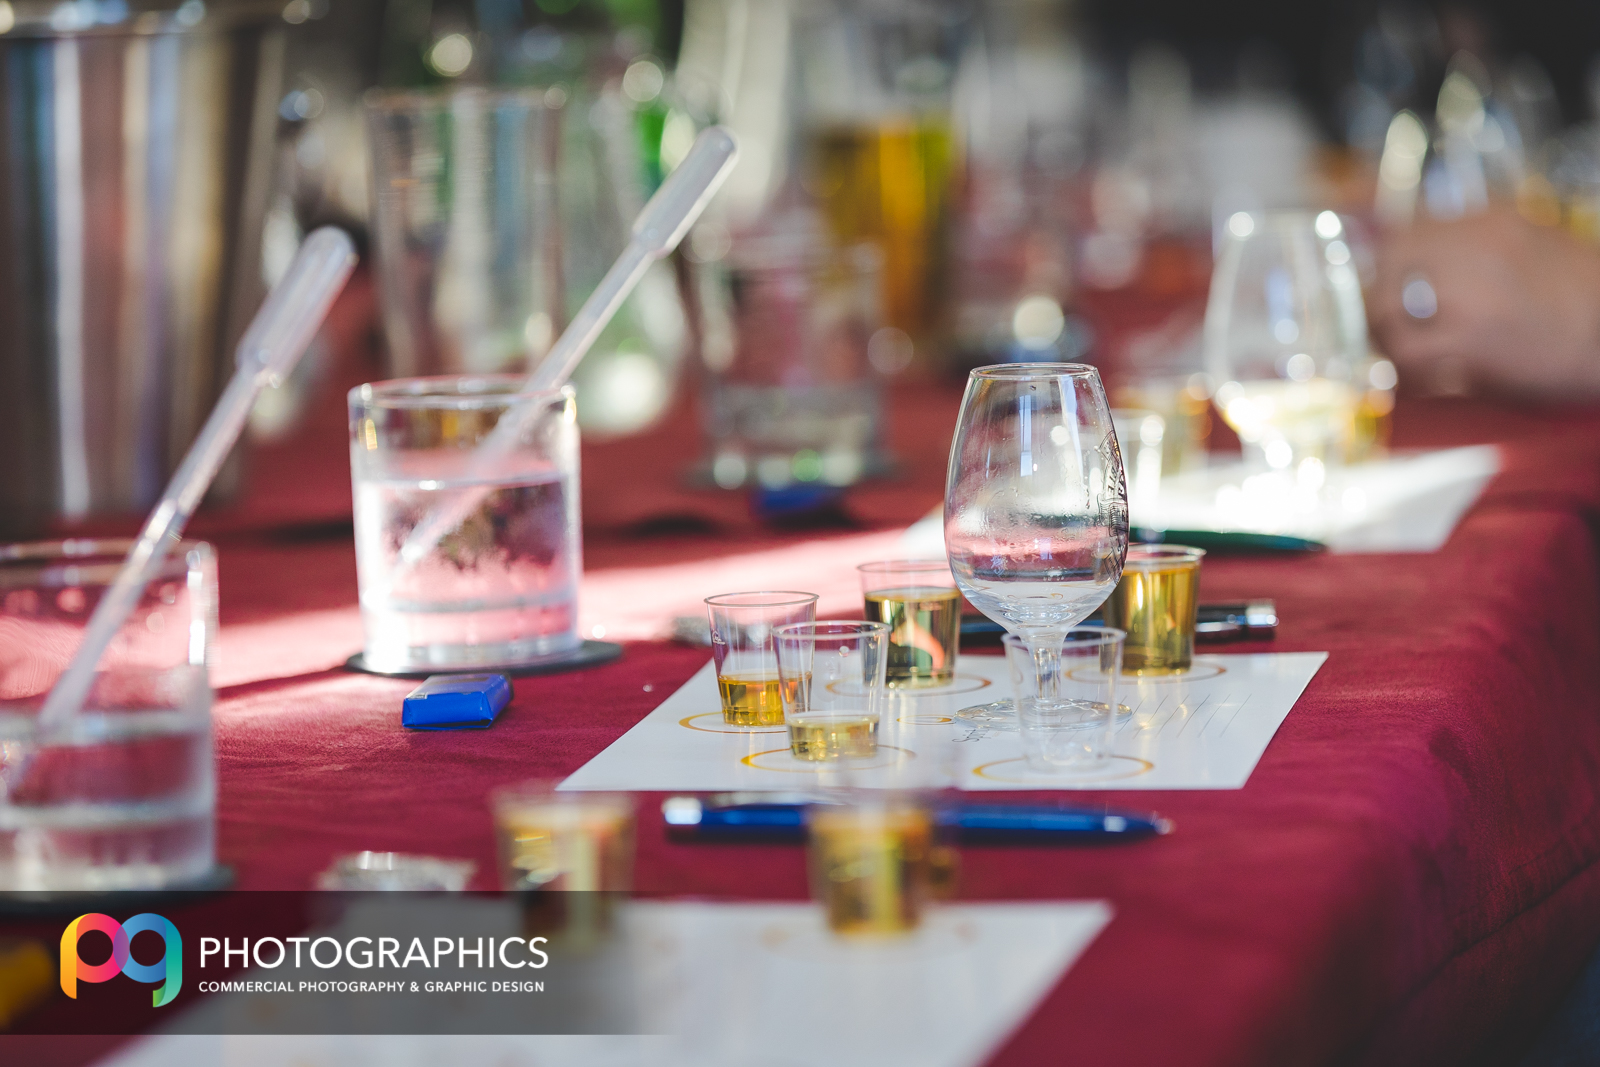 whisky-tasting-event-photography-glasgow-edinburgh-scotland-13.jpg